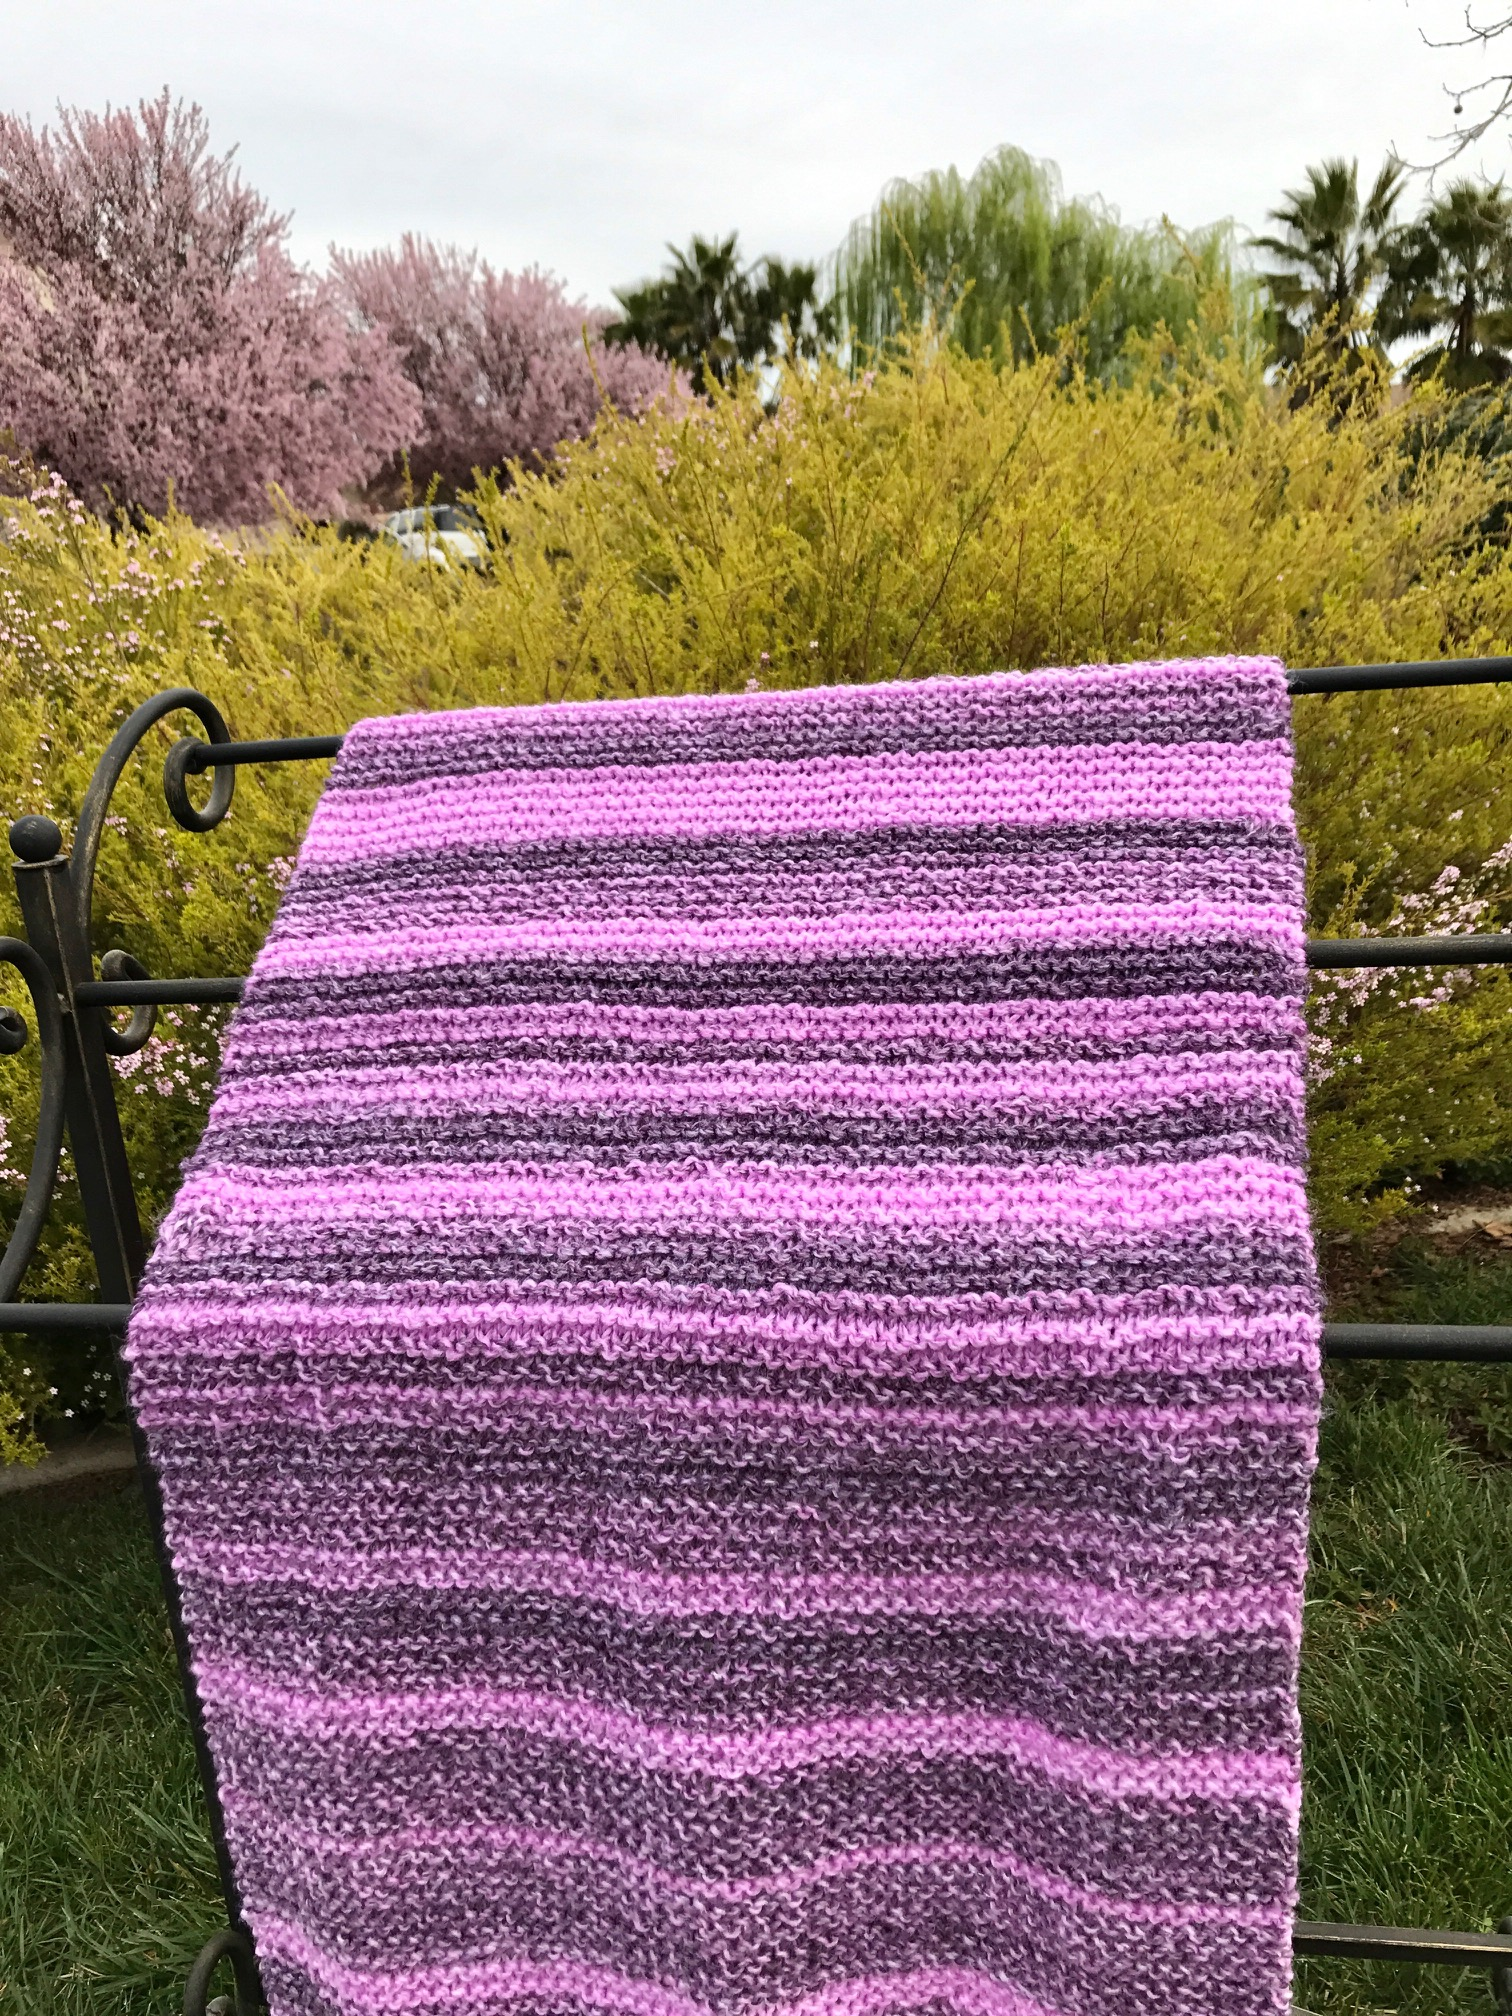 AE - Marilyn's Simply Alice prayer shawl.jpg